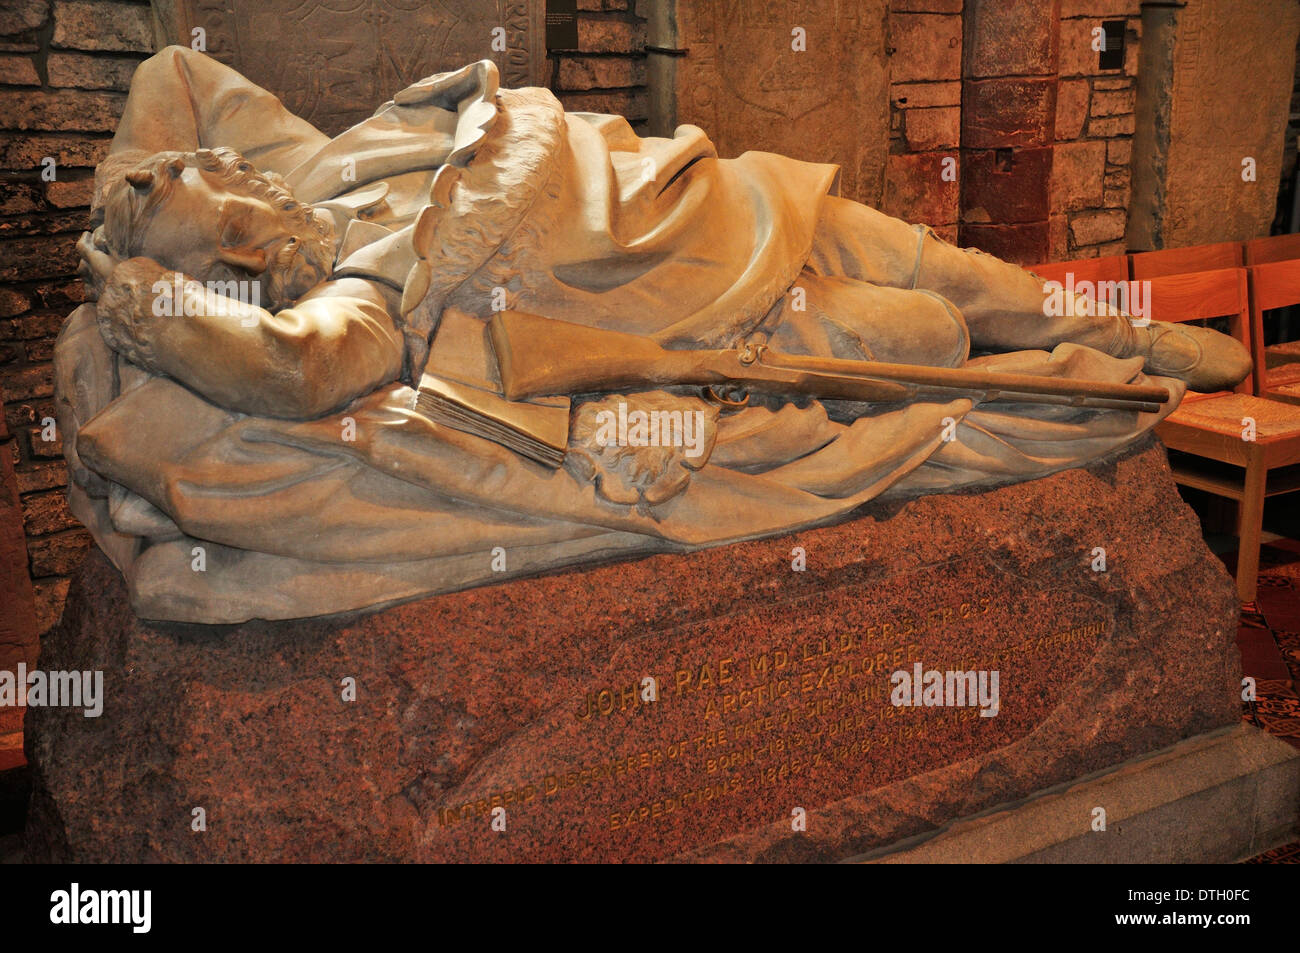 Monument to the arctic explorer John Rae, St. Magnus Cathedral, Kirkwall, Mainland, Orkney, Scotland, United Kingdom - Stock Image